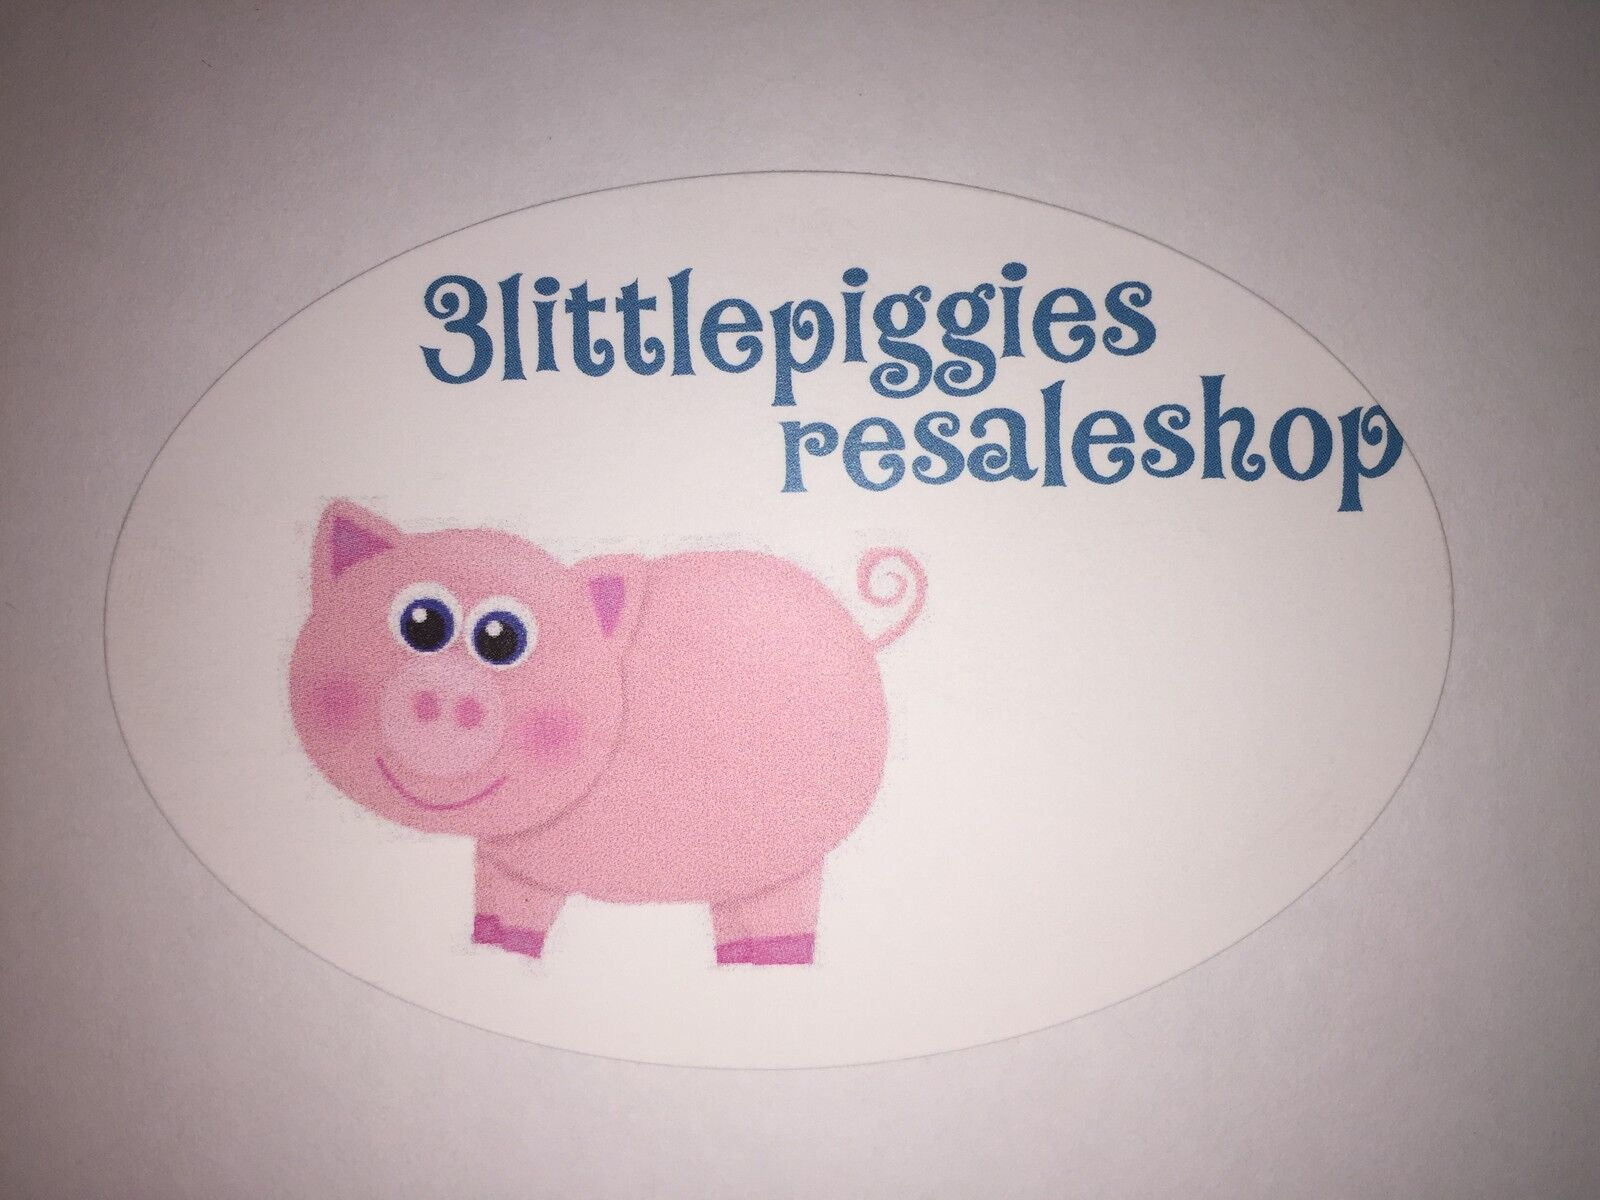 3 Little Piggies Resale Shop